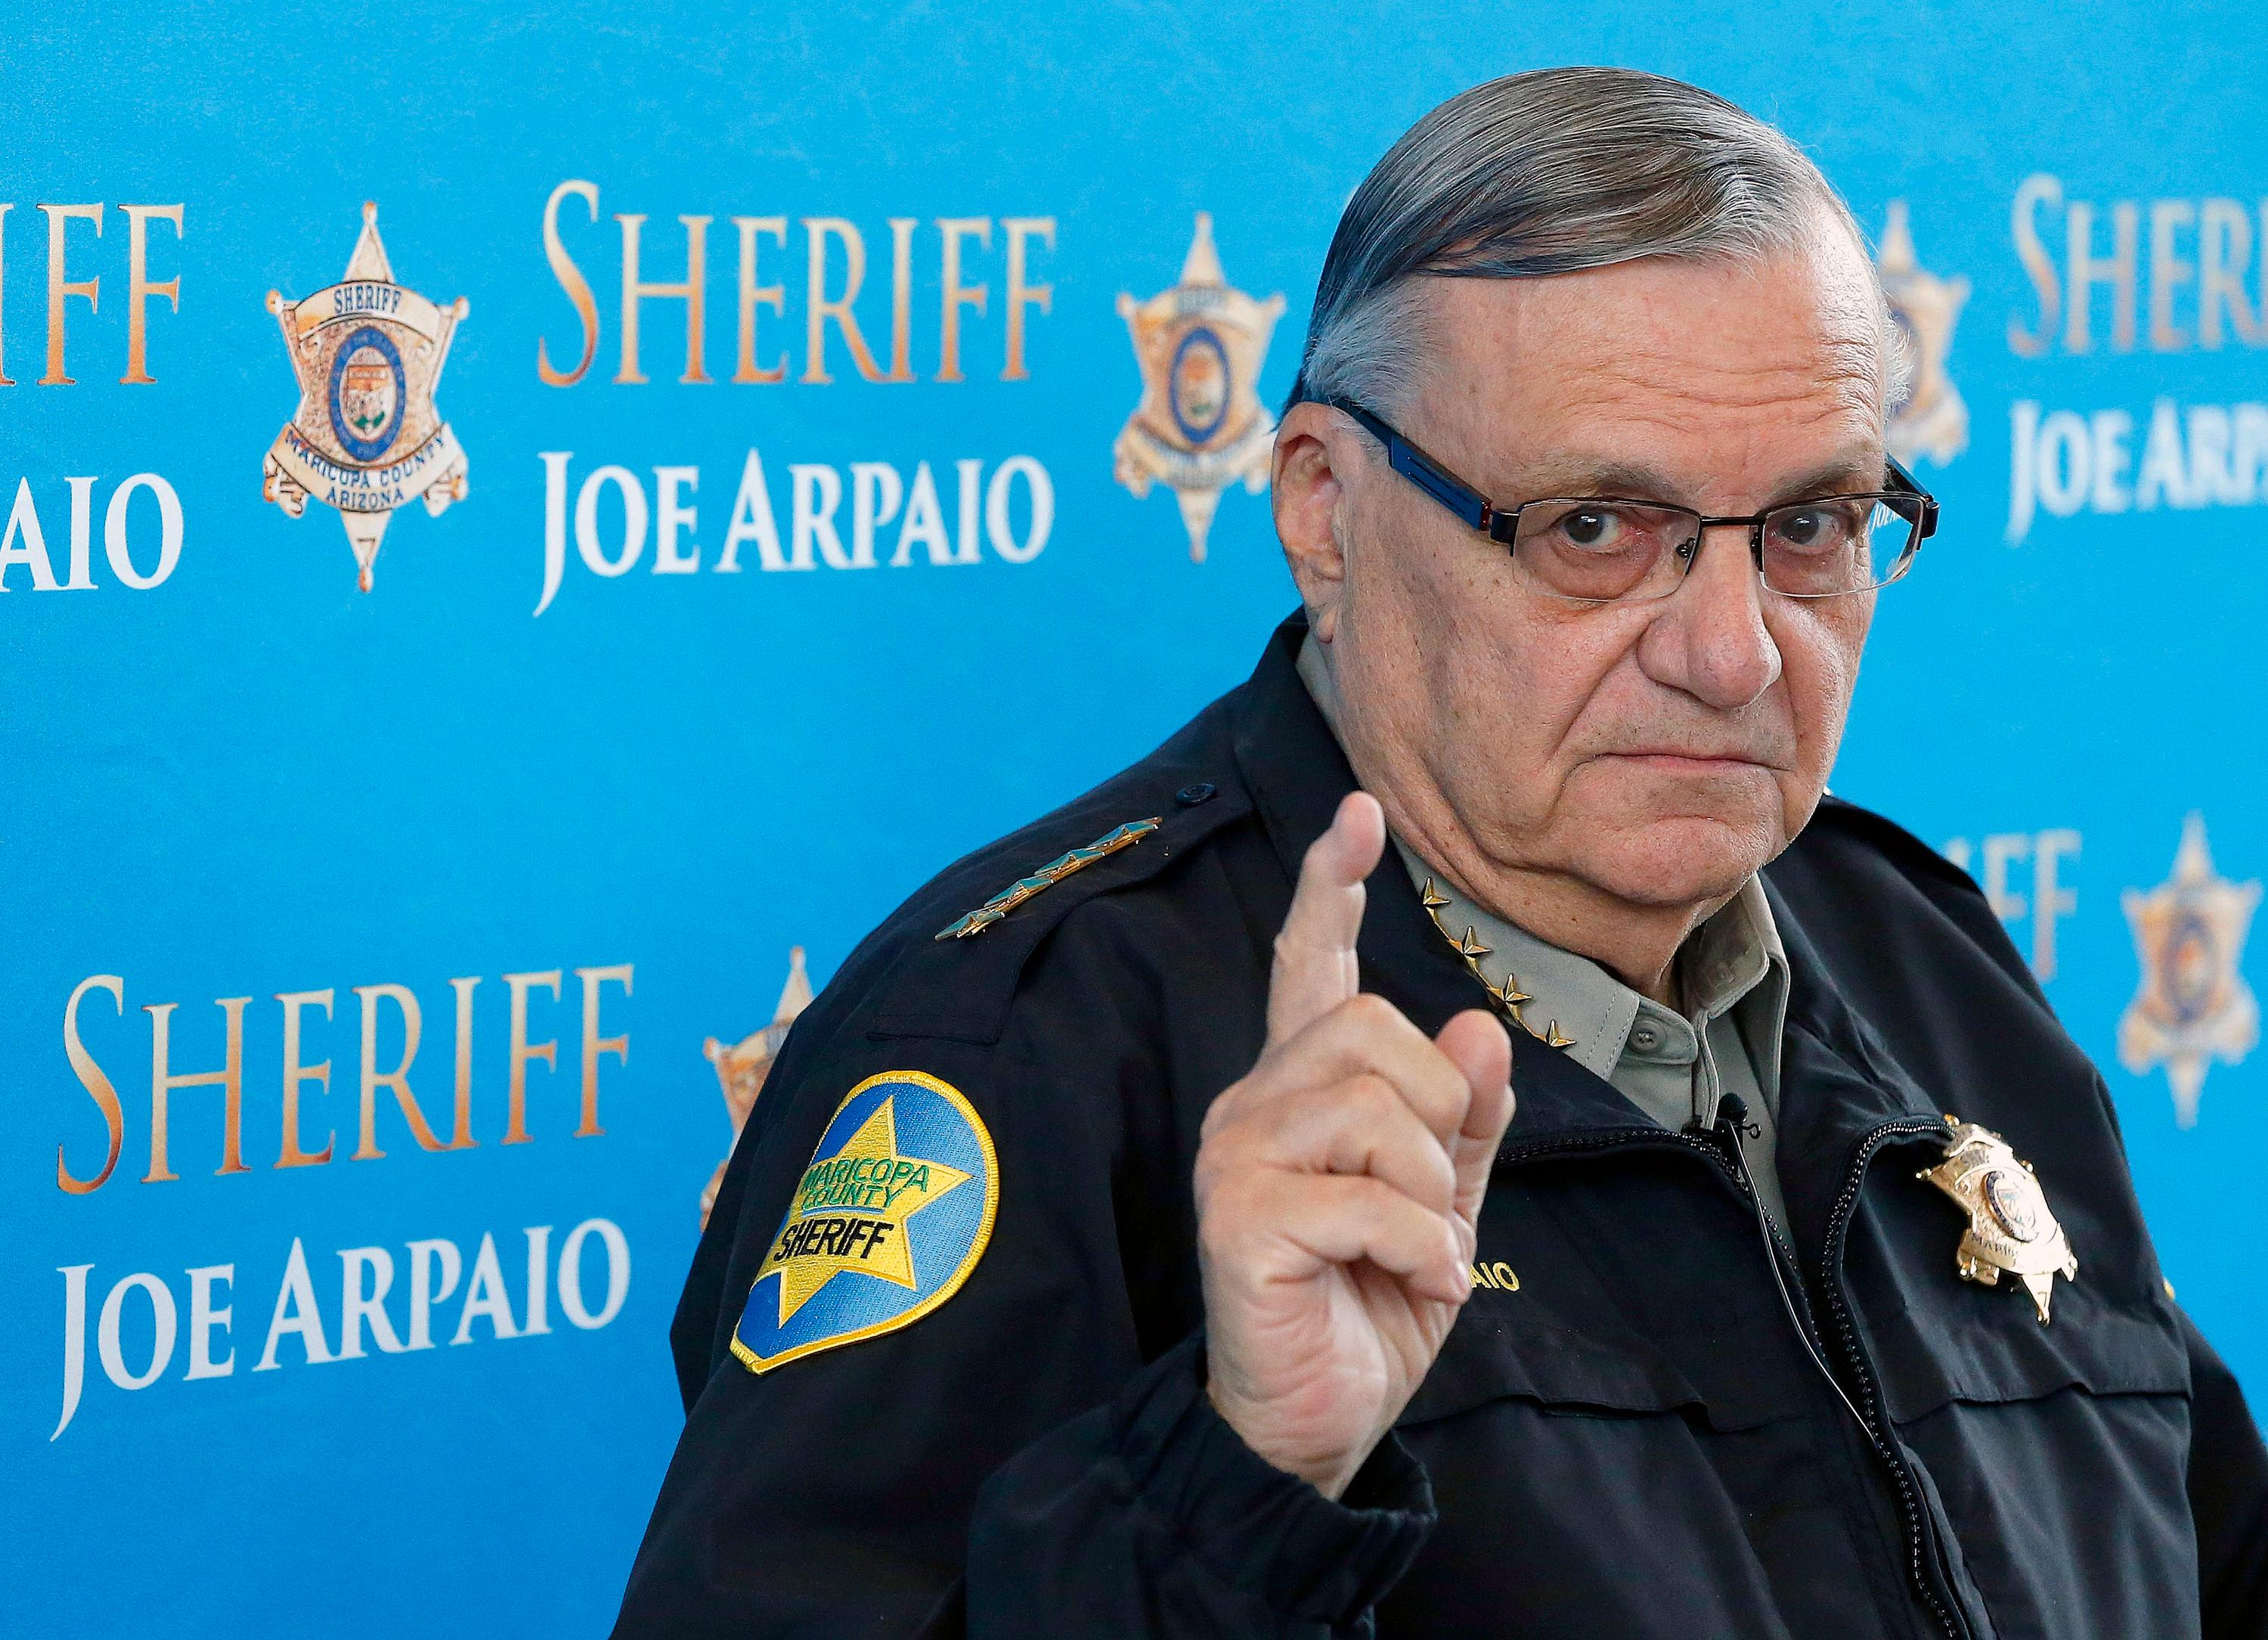 FILE - In this Dec. 18, 2013 file photo, Maricopa County Sheriff Joe Arpaio pauses as he answers a question at a news conference at Maricopa County Sheriff's Office Headquarters in Phoenix. Arpaio was convicted of a criminal charge Monday, July 31, 2017, for refusing to stop traffic patrols that targeted immigrants, marking a final rebuke for a politician who once drew strong popularity from such crackdowns but was ultimately booted from office as voters became frustrated over his headline-grabbing tactics and deepening legal troubles. (AP Photo/Ross D. Franklin, File)